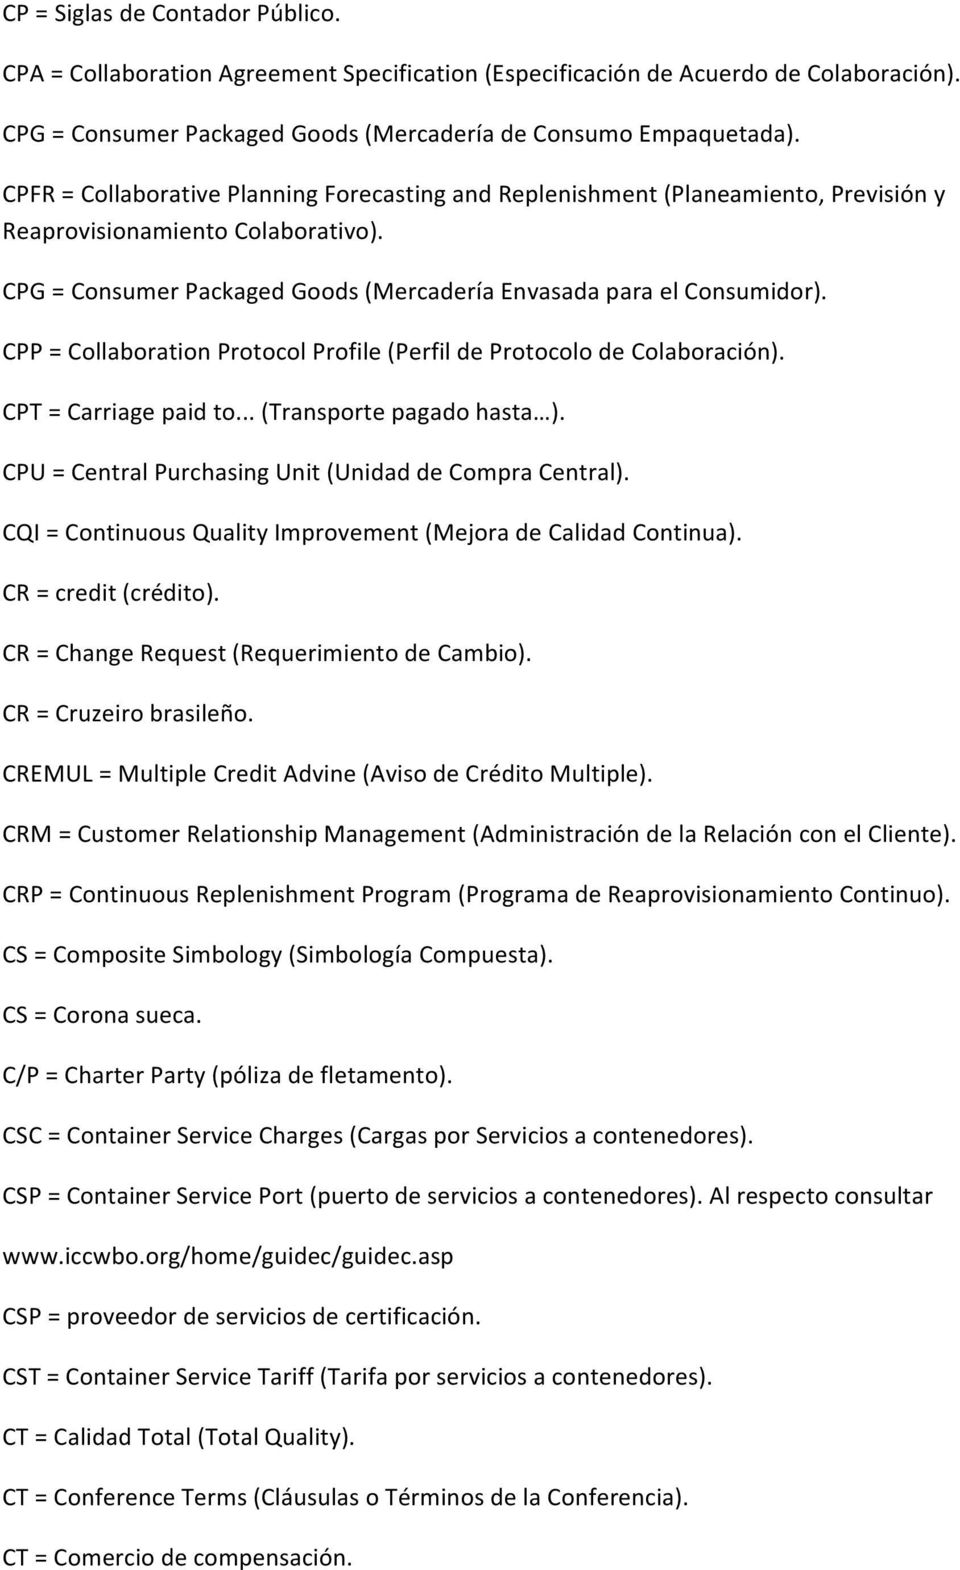 CPP = Collaboration Protocol Profile (Perfil de Protocolo de Colaboración). CPT = Carriage paid to... (Transporte pagado hasta ). CPU = Central Purchasing Unit (Unidad de Compra Central).